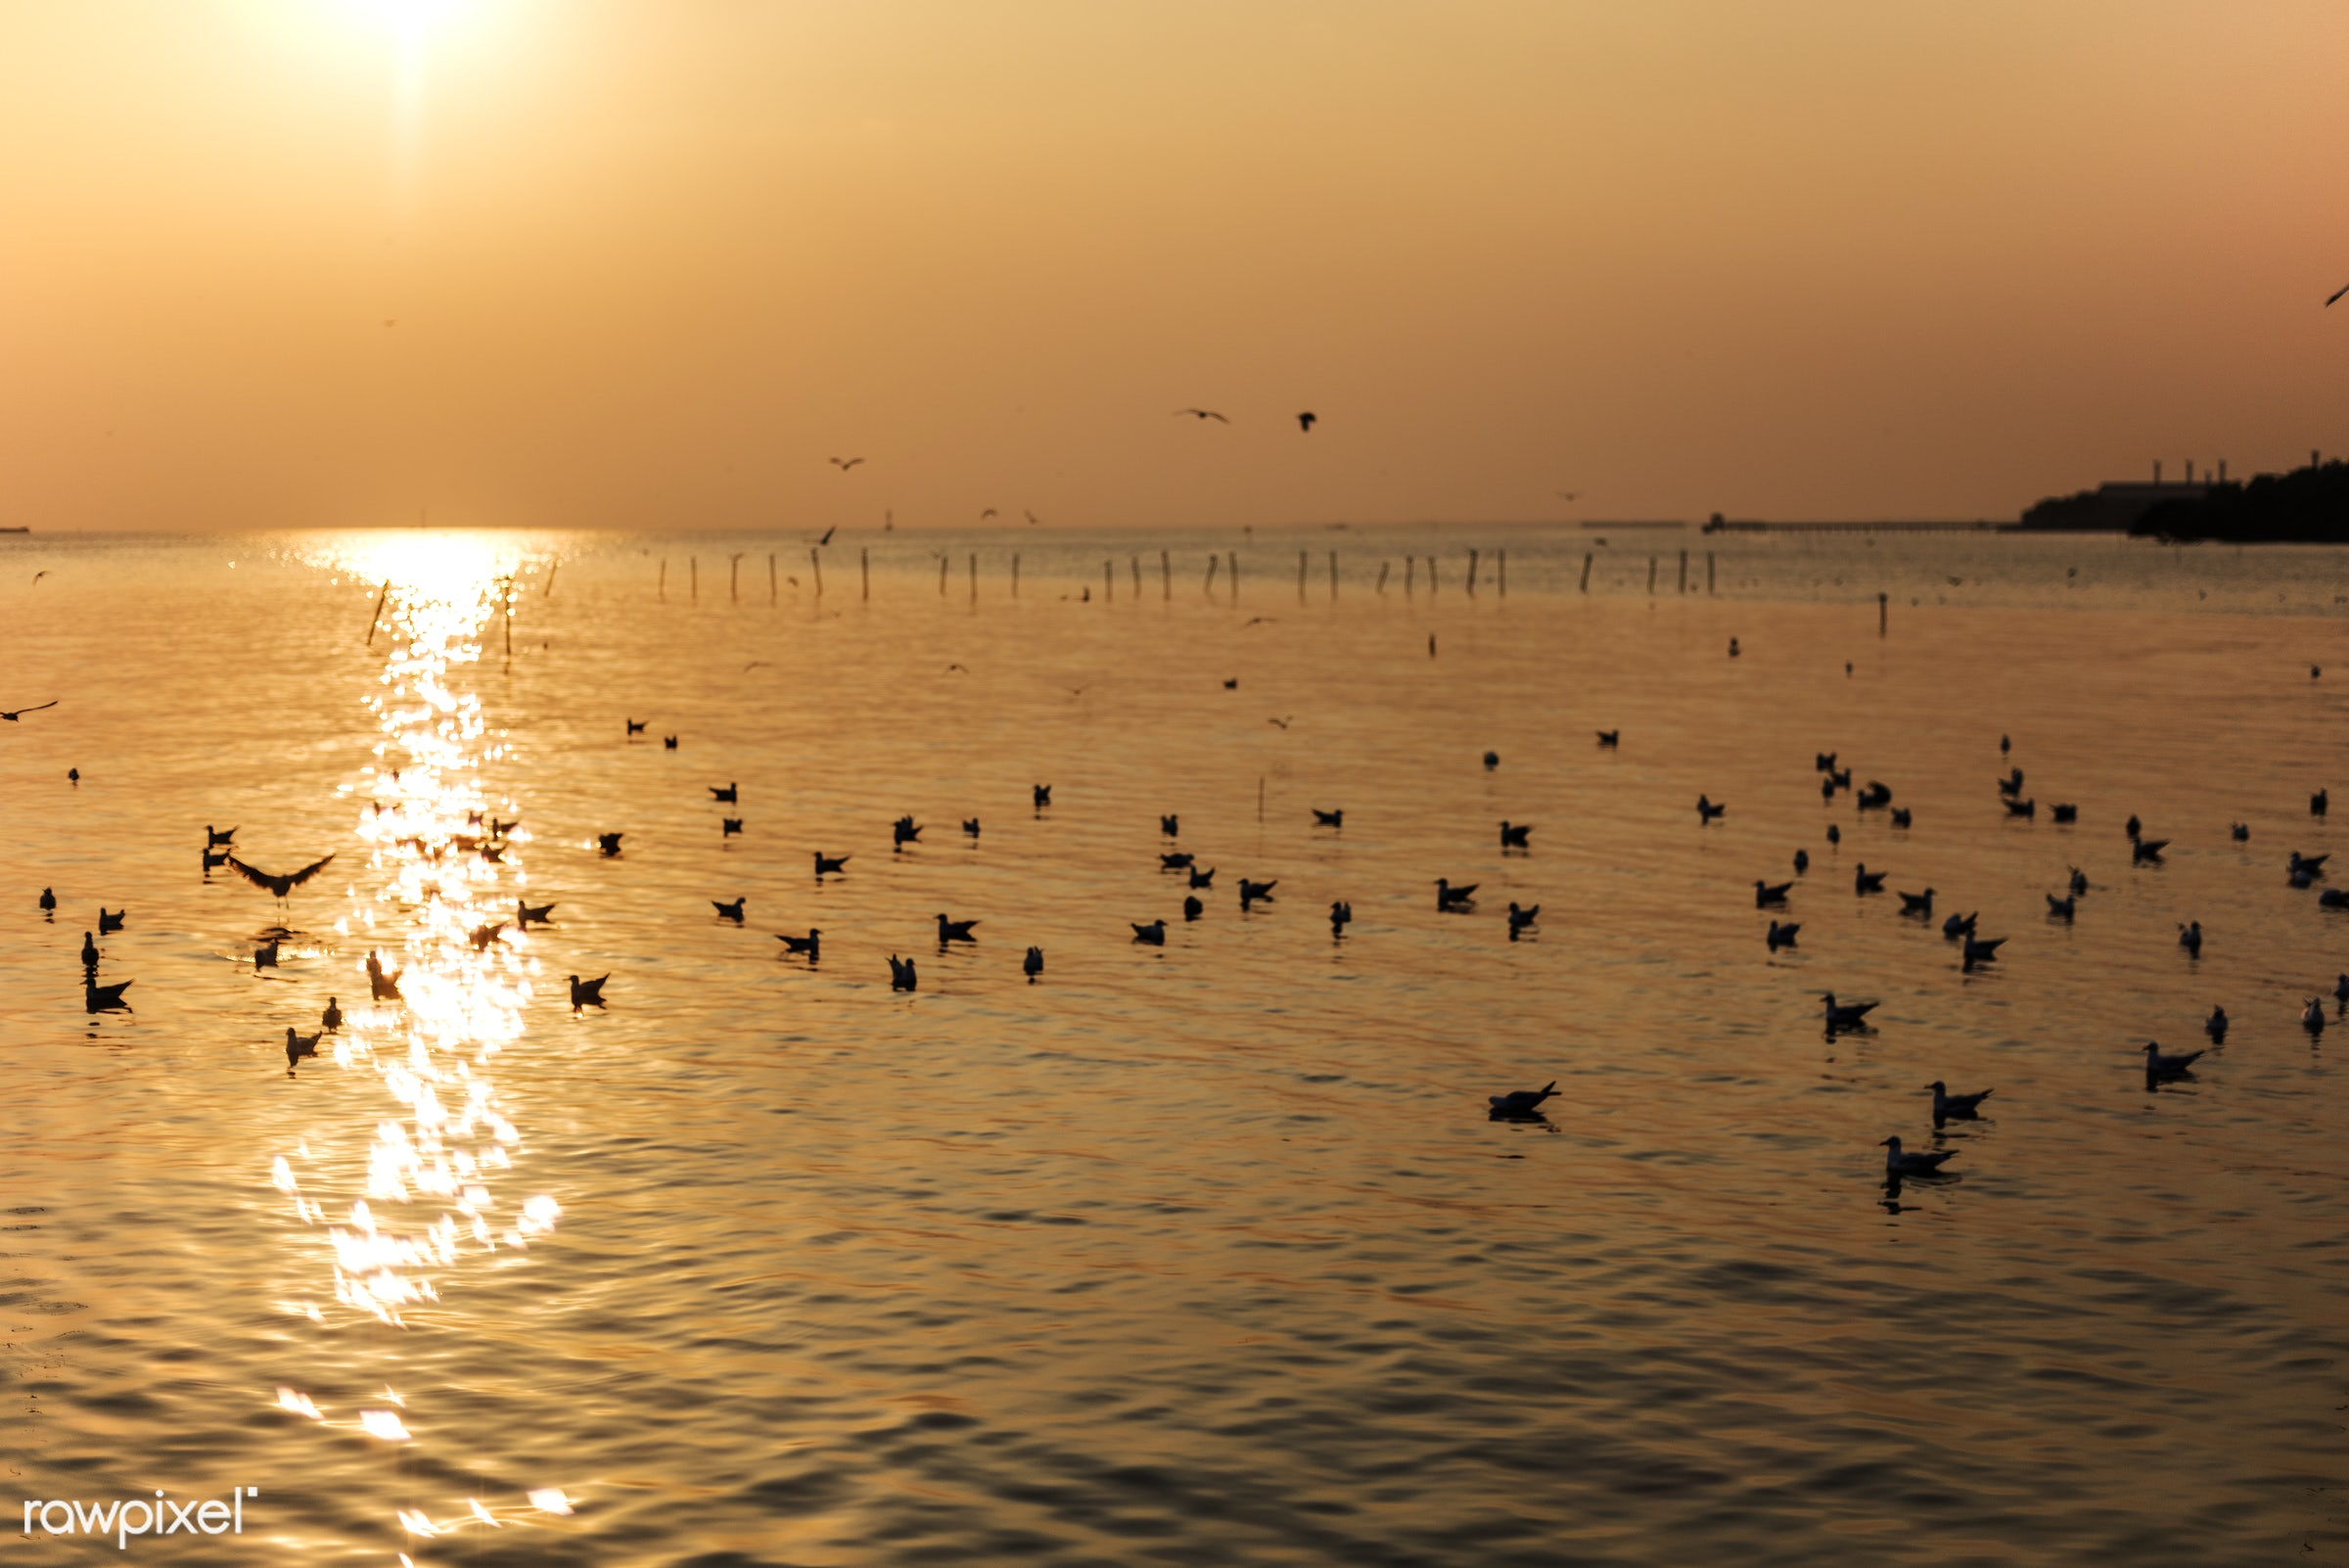 Birds in the water at sunset - birds, sky, sunset, animal, flock, nature, outdoors, seagull, resting, water, sea, ocean